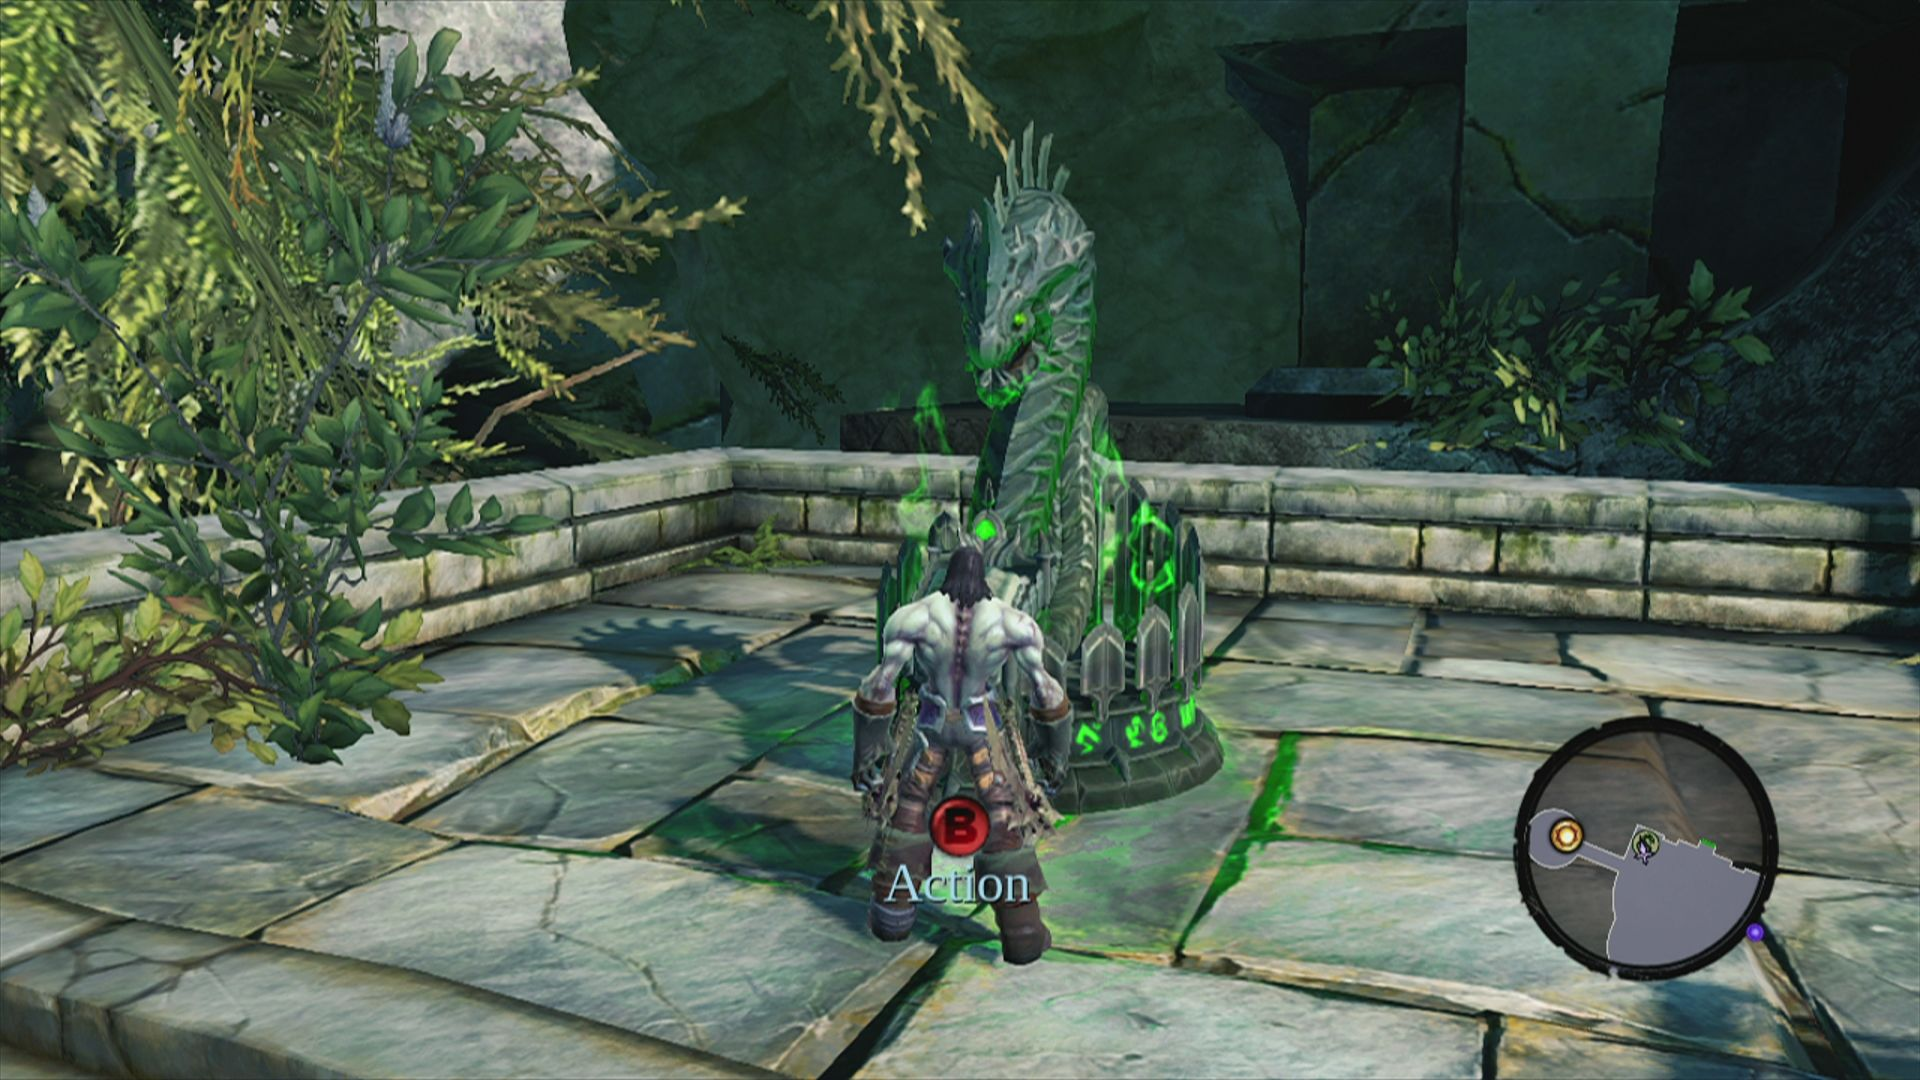 Darksiders II Xbox 360 You can use this device to send items to friends on XBOX Live